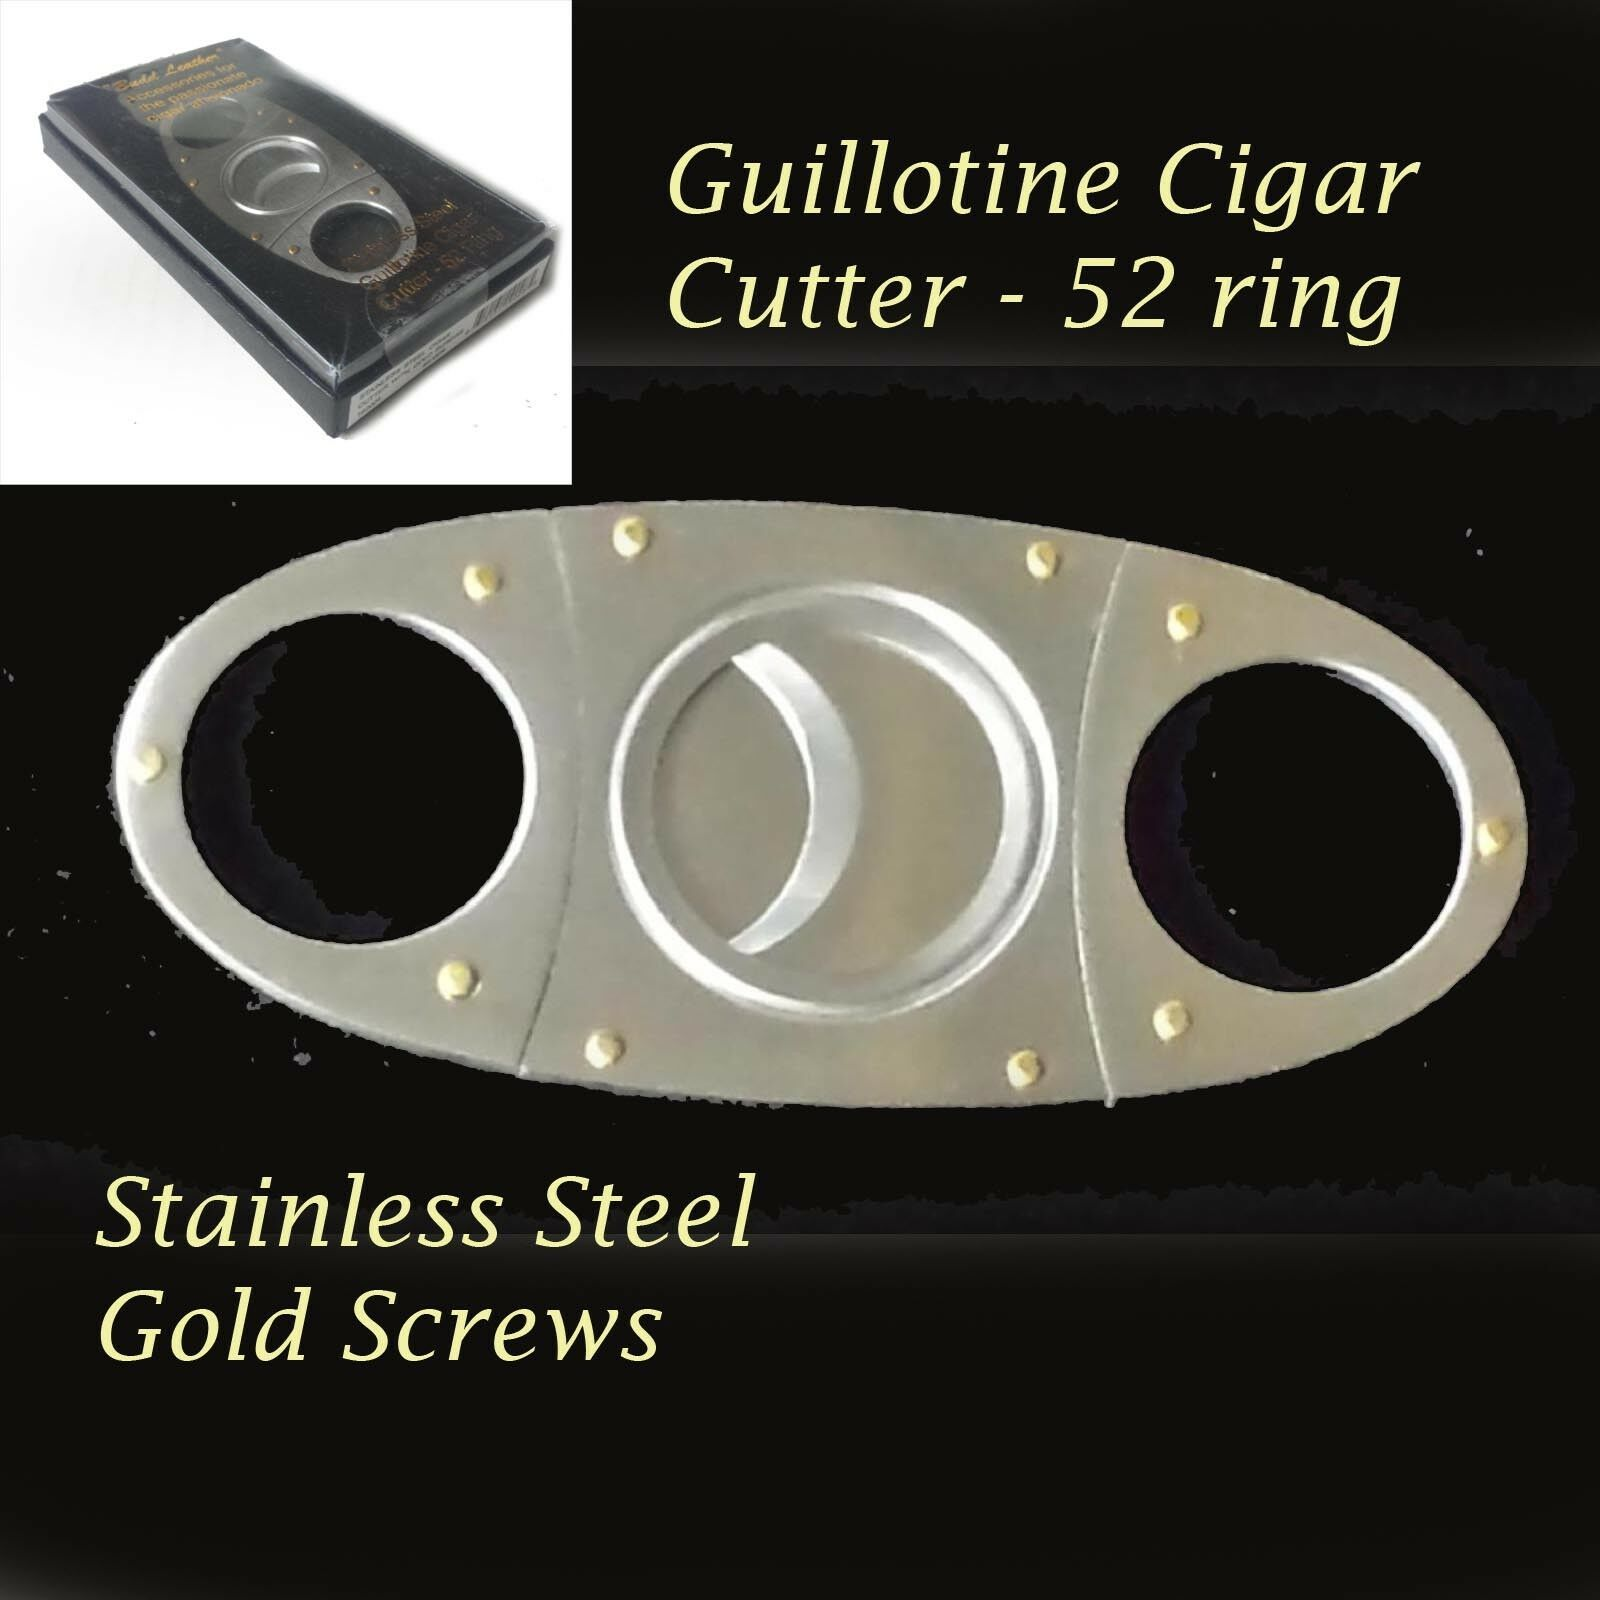 Budd leather guillotine cigar cutter 52 ring stainless